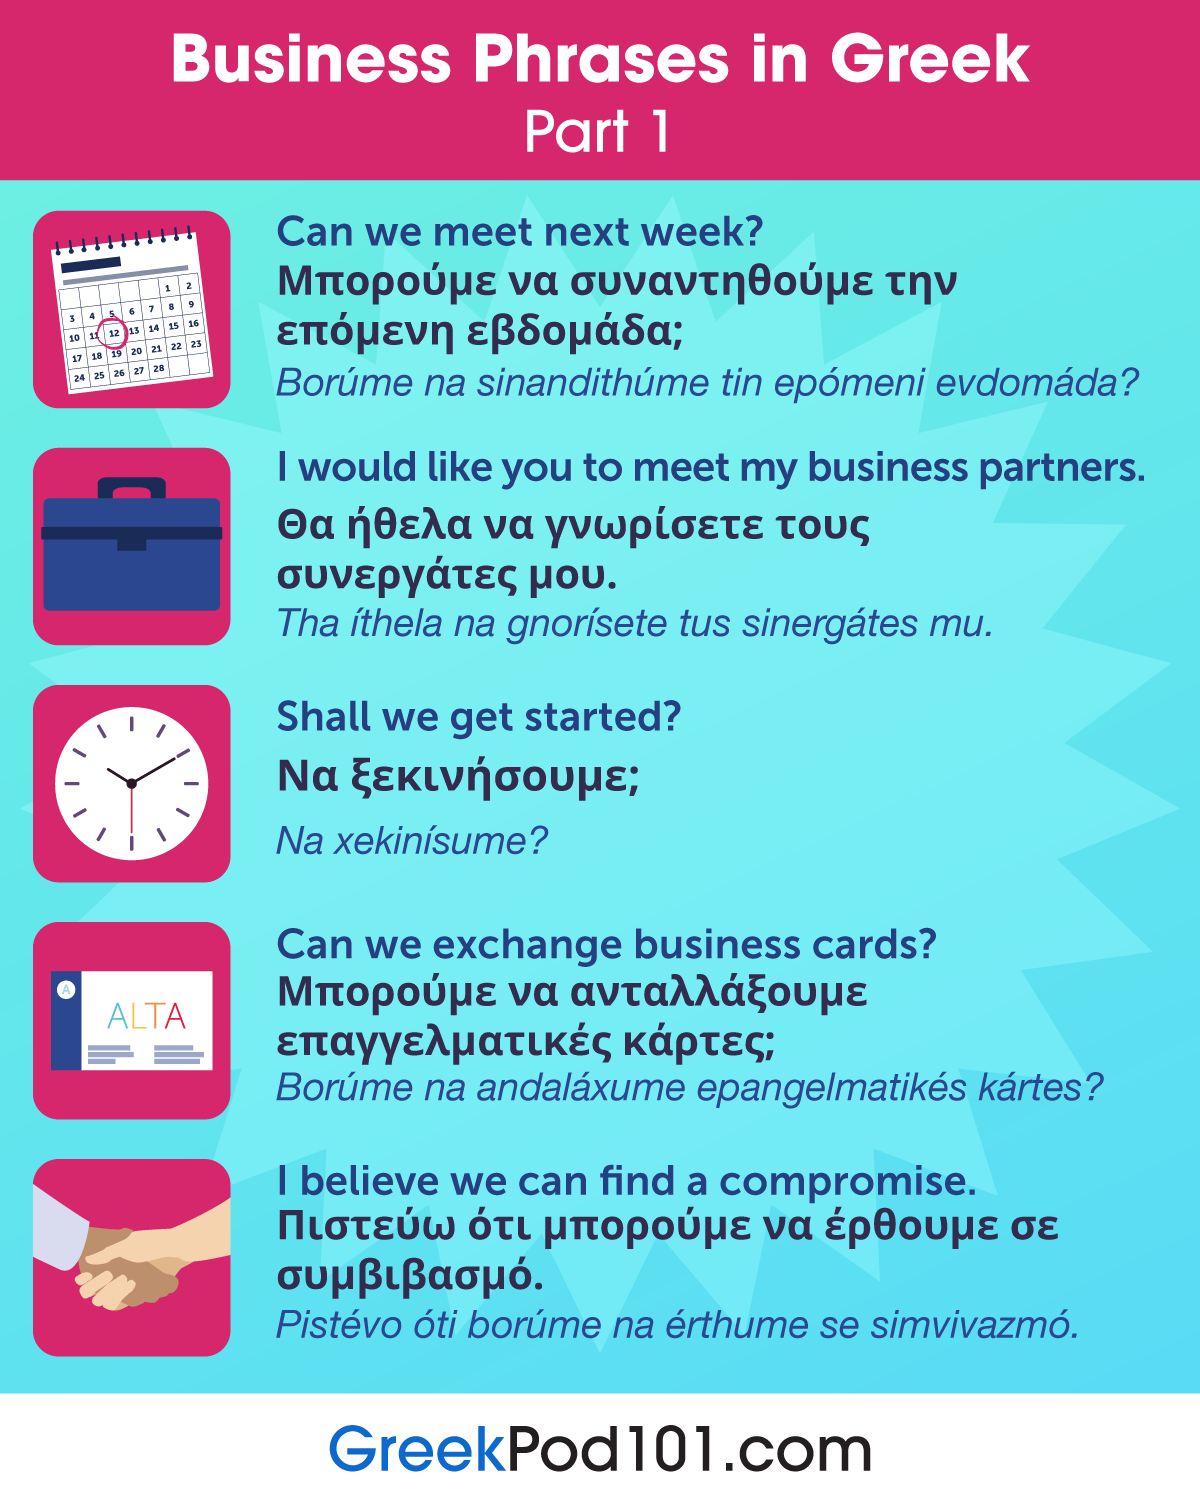 Business Phrases